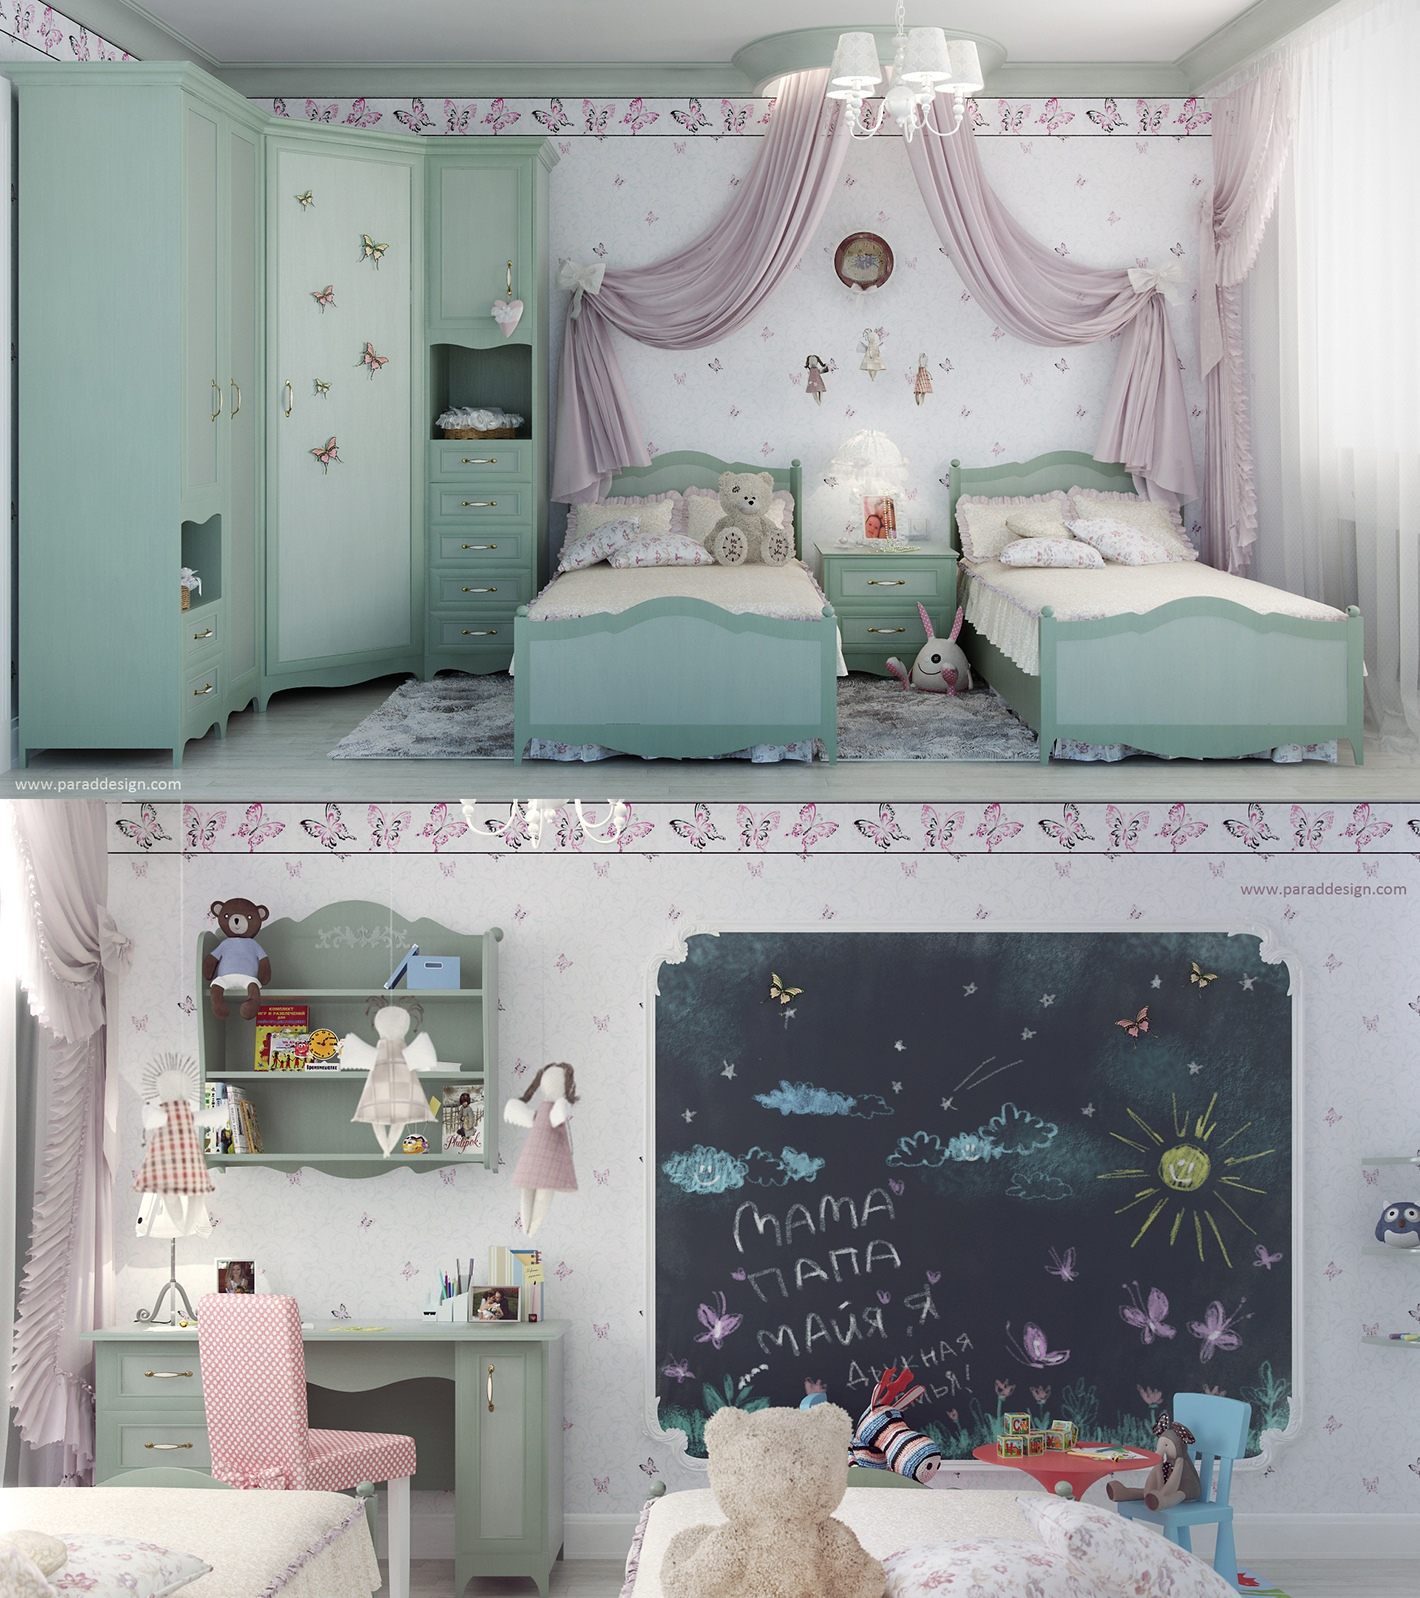 2 Little Girls Bedroom 7 Interior Design Ideas